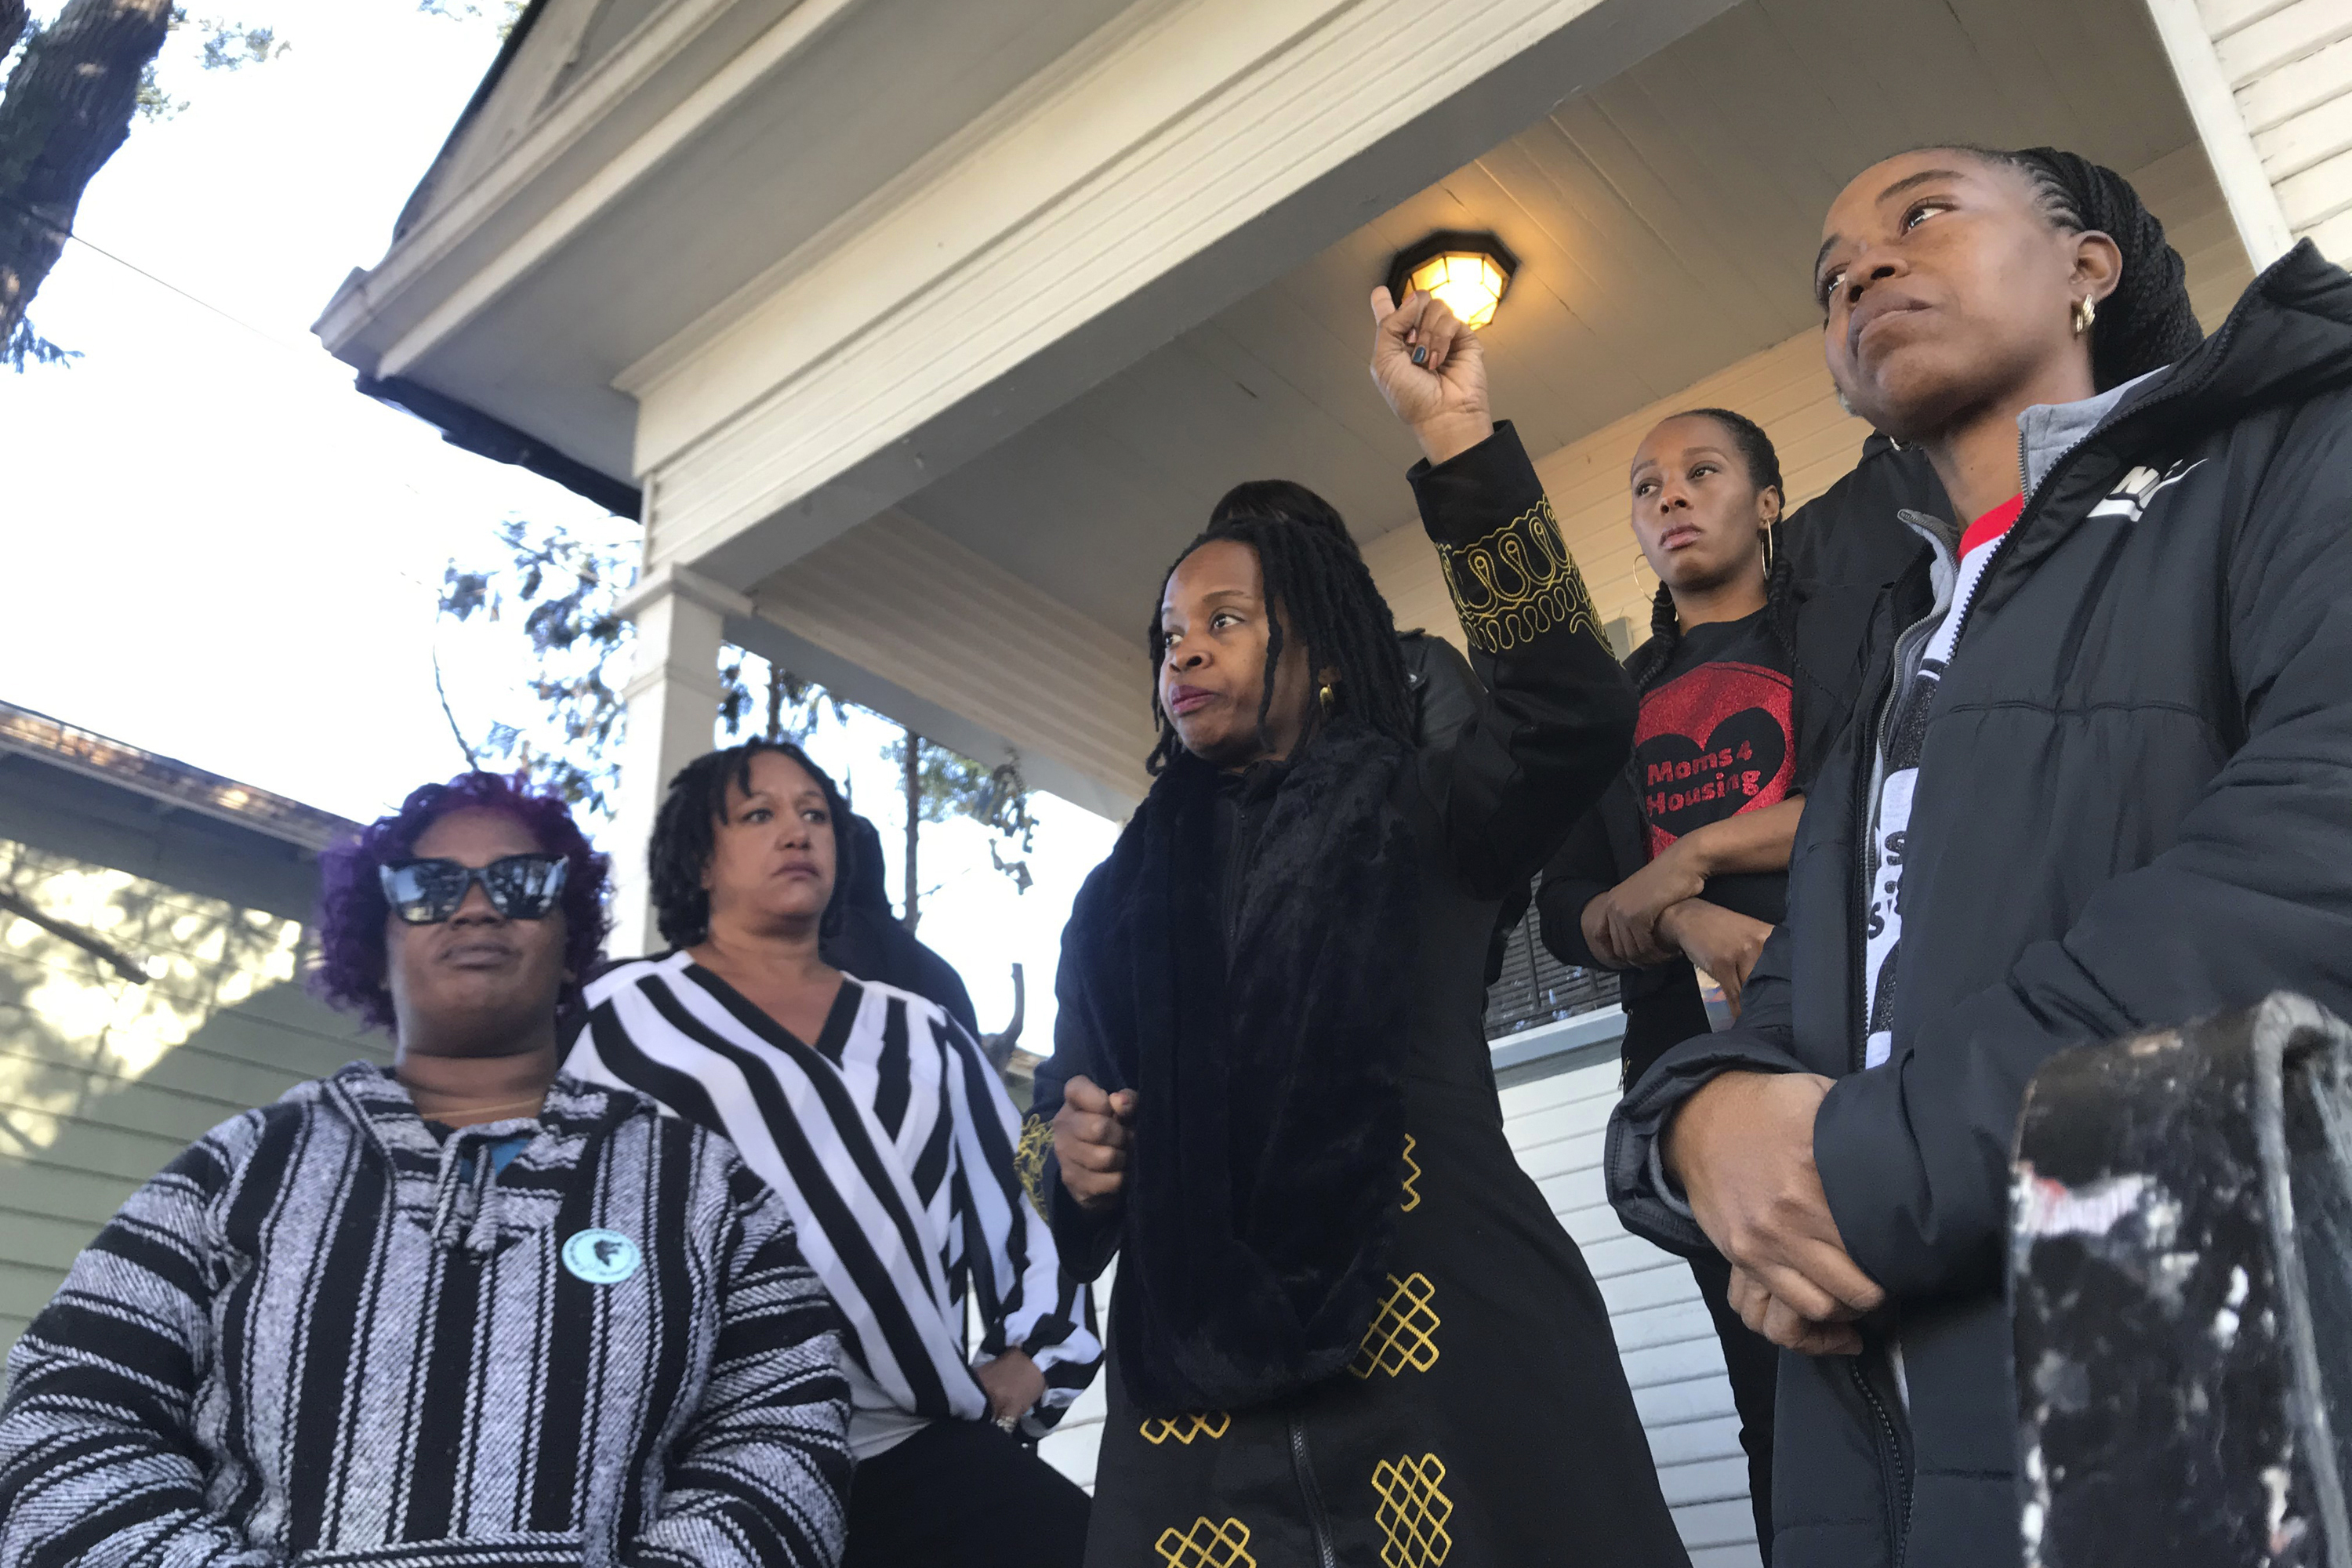 In this Dec. 30, 2019, file photo, Sharena Thomas, left, Carroll Fife, center, Dominique Walker, second from right, and Tolani KIng, right, stand outside a vacant home they took over on Magnolia Street in West Oakland, Calif.